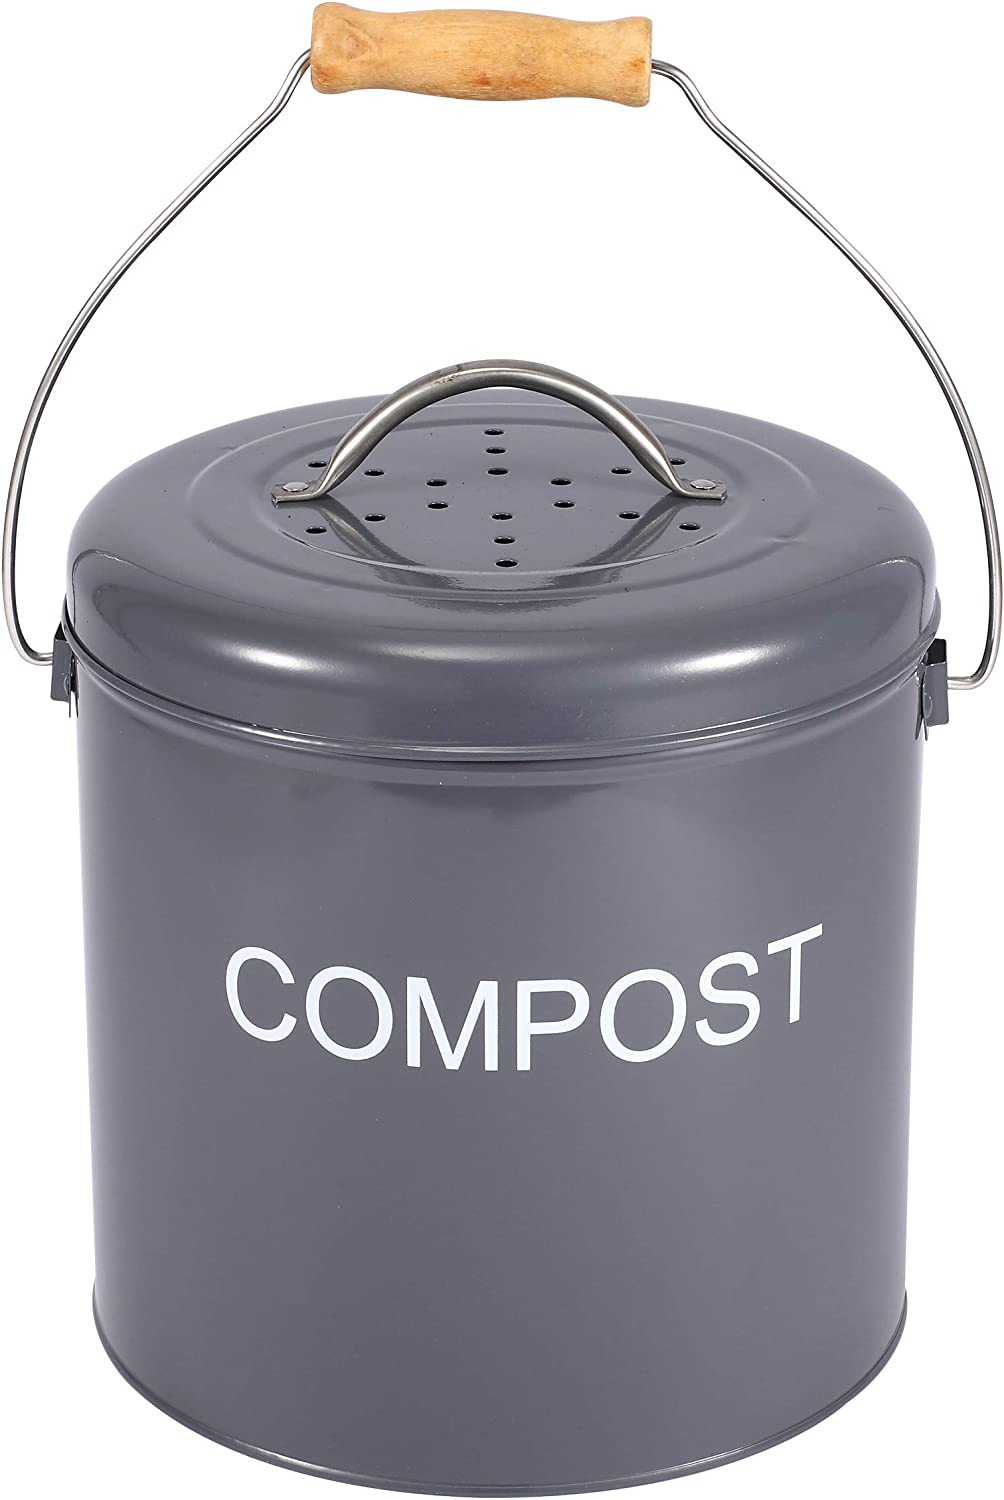 Xbopetda Compost Bin for Kitchen Countertop, Indoor Scraps Compost Bucket with Lid, Kitchen Pail Trash Keeper Container Recycling Caddy for Food Scraps (Gray)